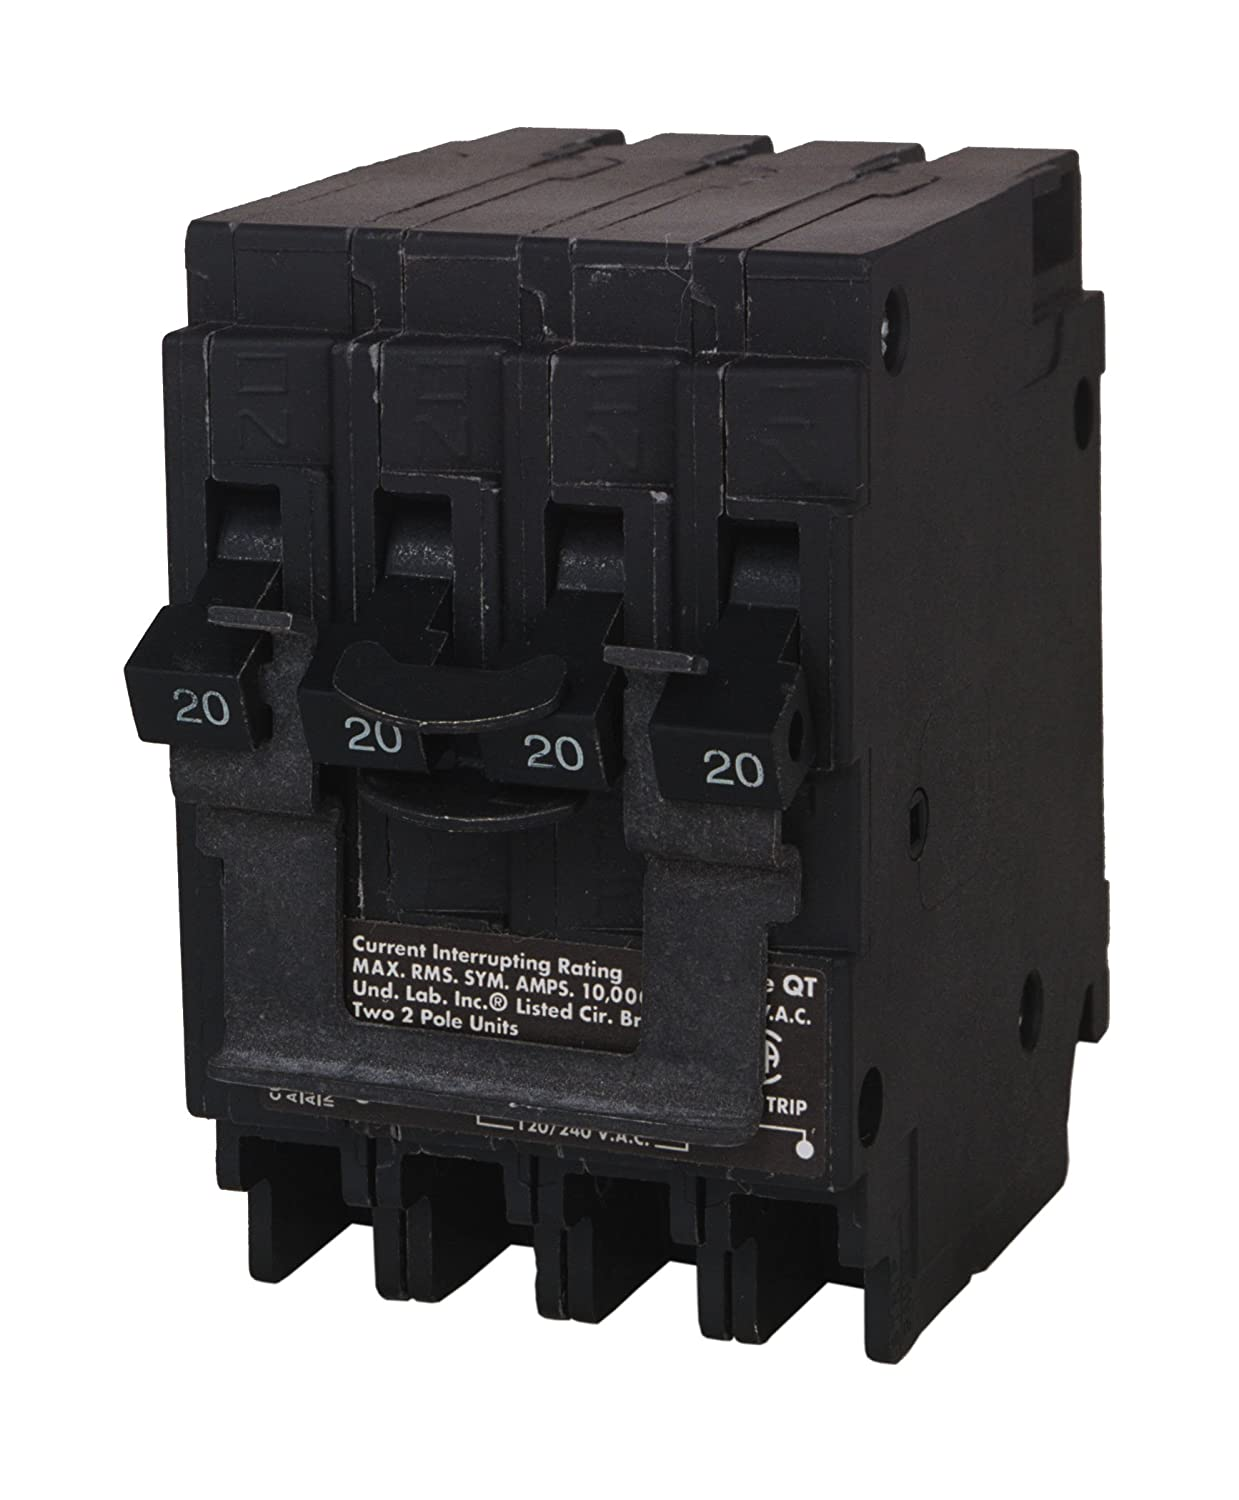 Famous Lifan 125 Wiring Harness Small Lifan 125cc Engine Wiring Shaped How To Install A Remote Starter Bulldog Wiring Young Bdneww FreshReznor Wiring Diagram Siemens Q22020CT2 Two 20 Amp Double Pole Circuit Breaker ..